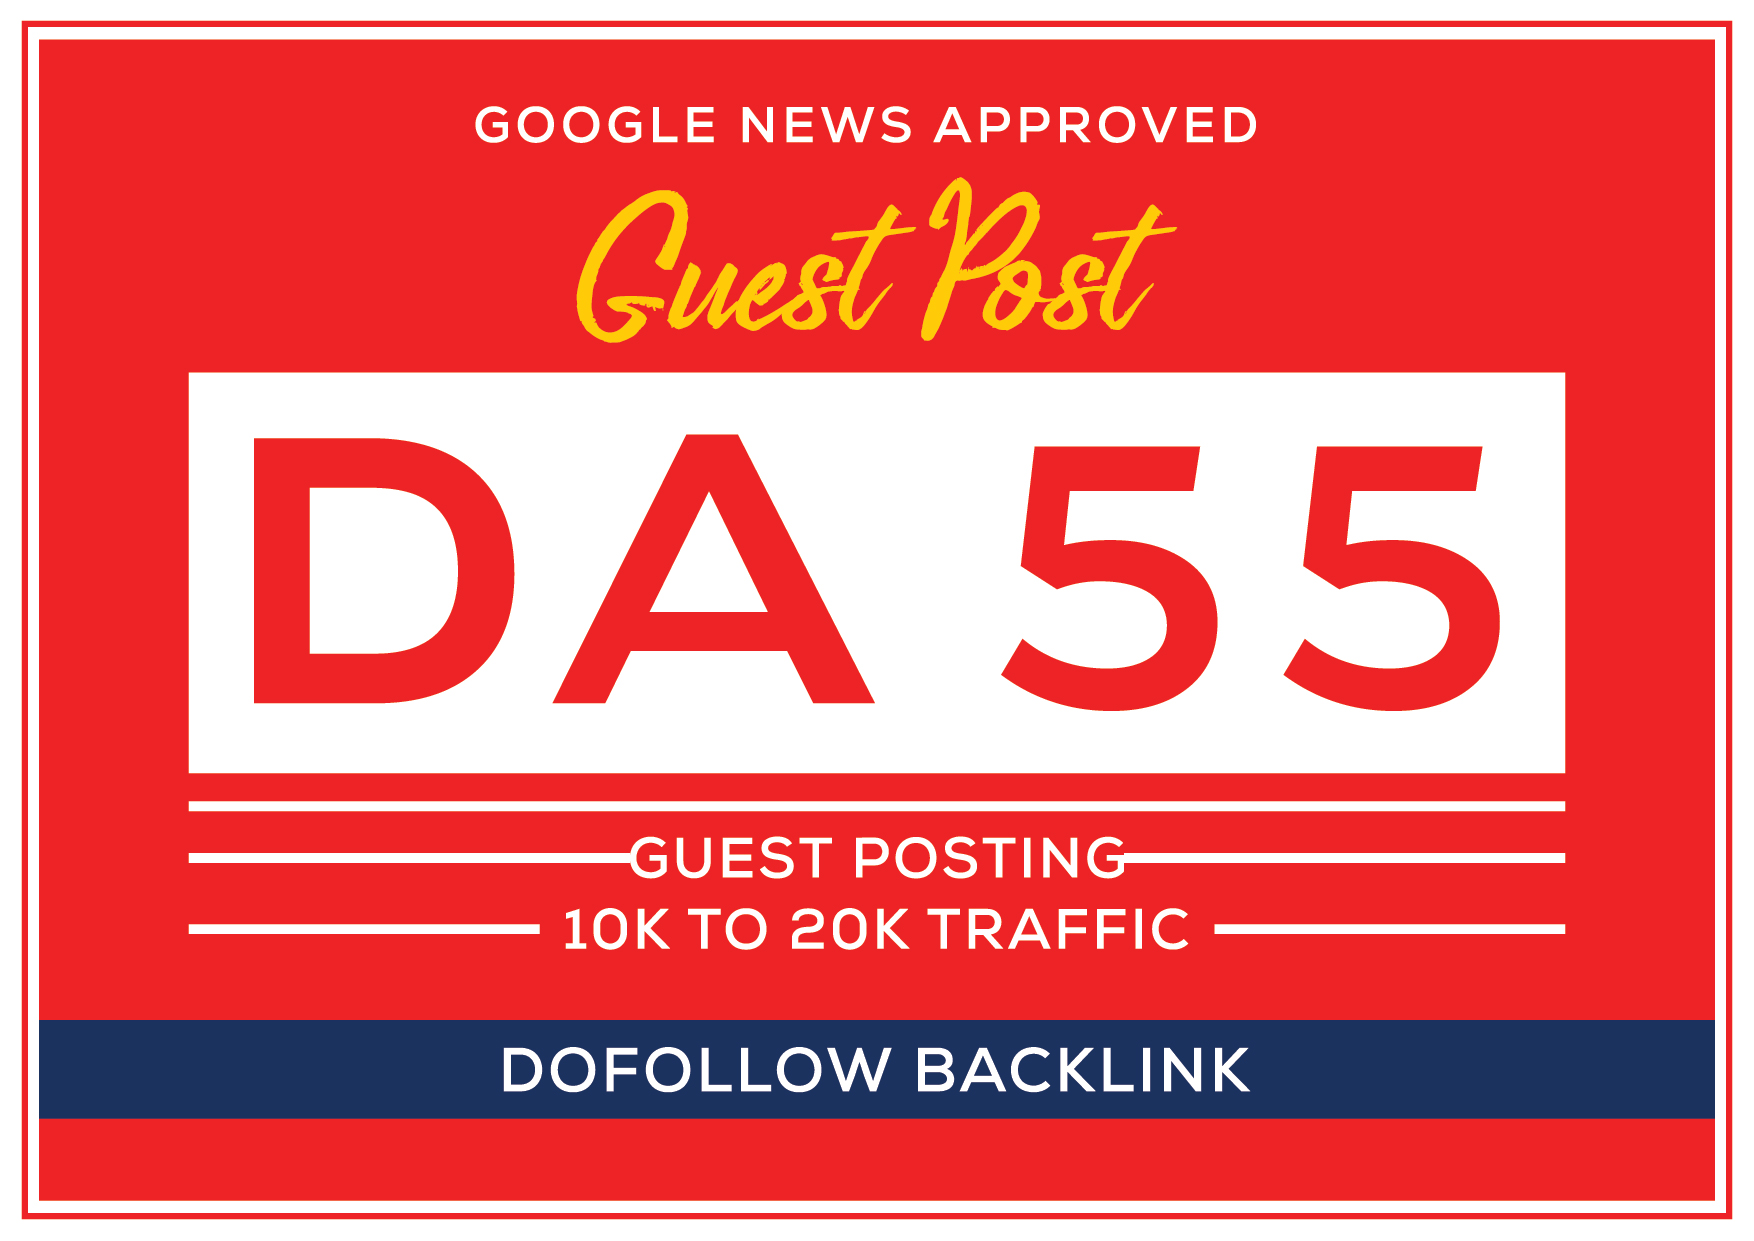 publish guest post on my DA 55 google news approved website 10k to 20k traffic